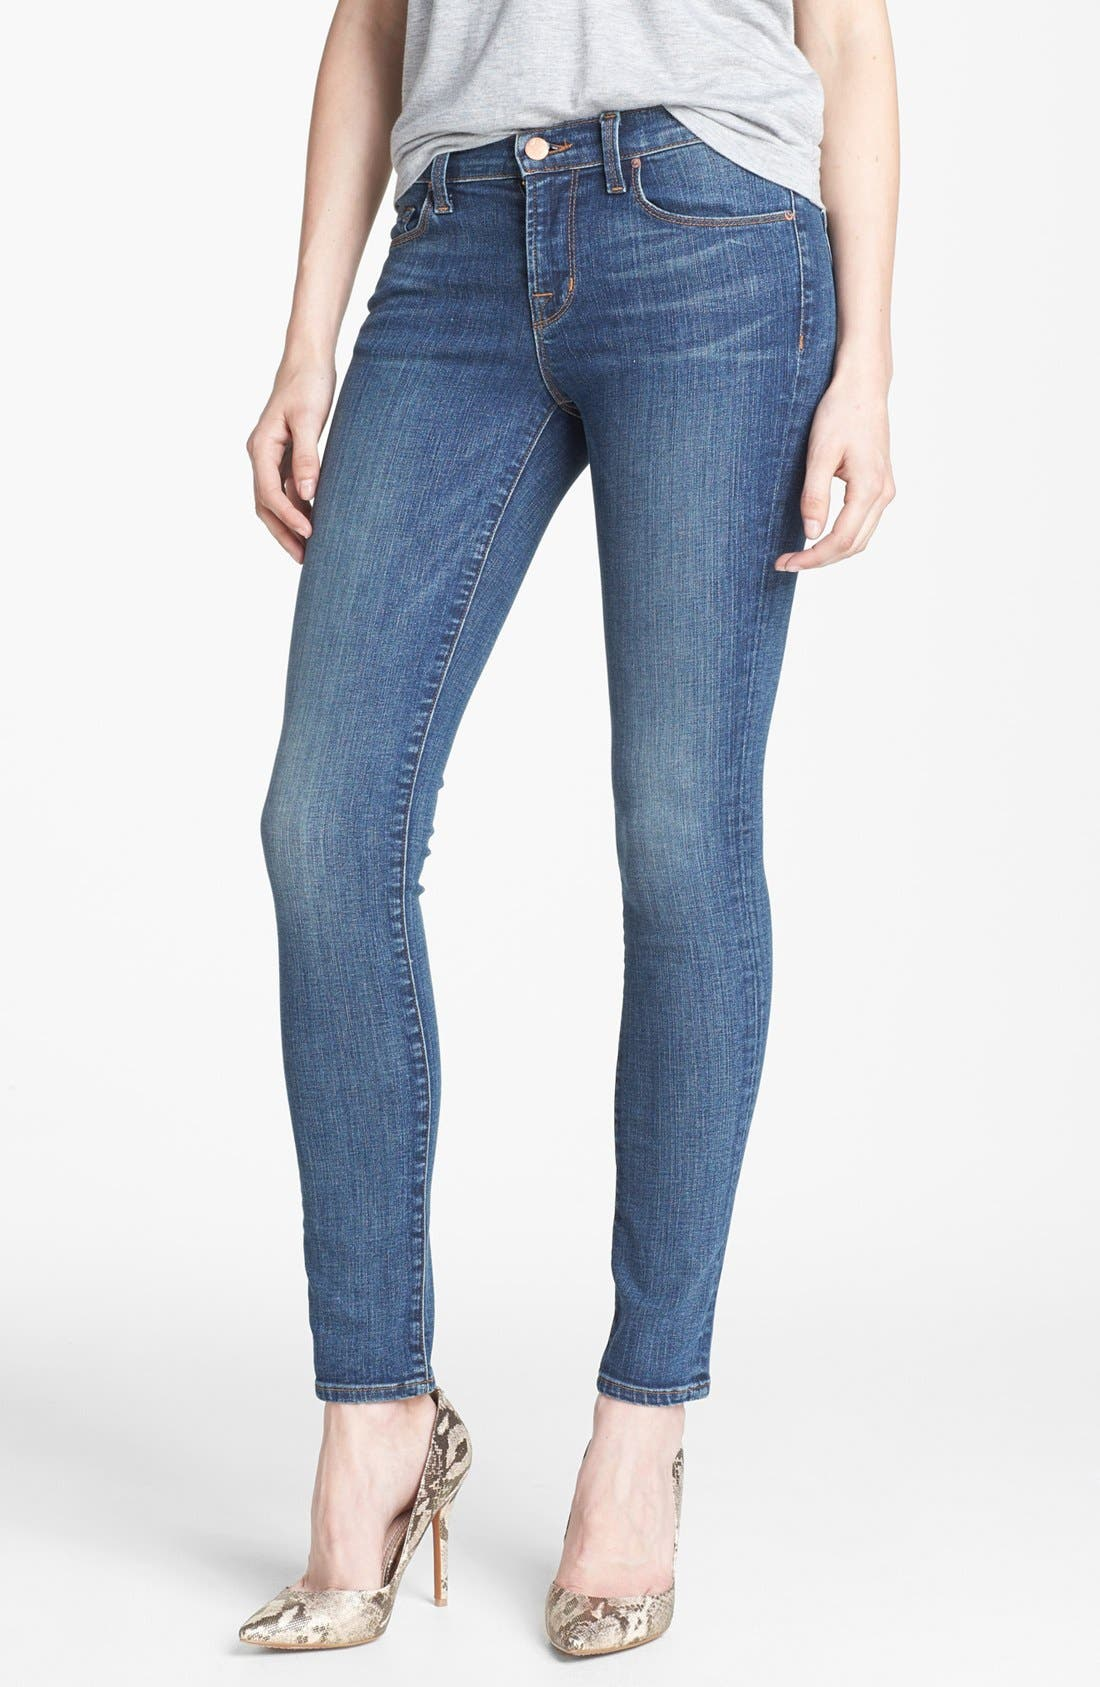 Alternate Image 1 Selected - J Brand '811' Skinny Stretch Jeans (Skylar)